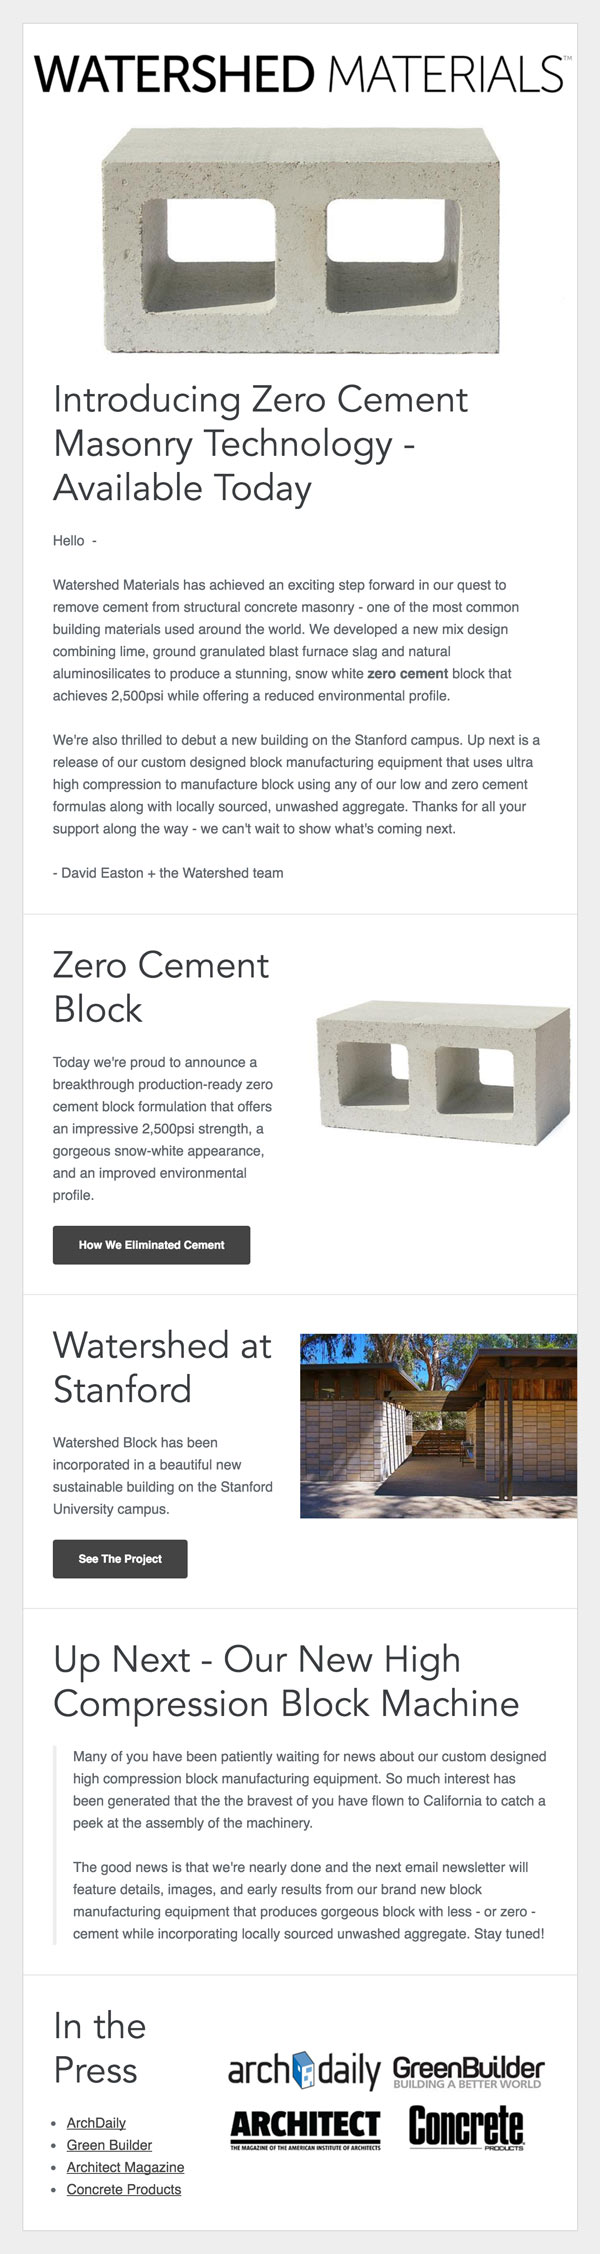 Watershed-Materials-Email-Newsletter-2015-November.jpg